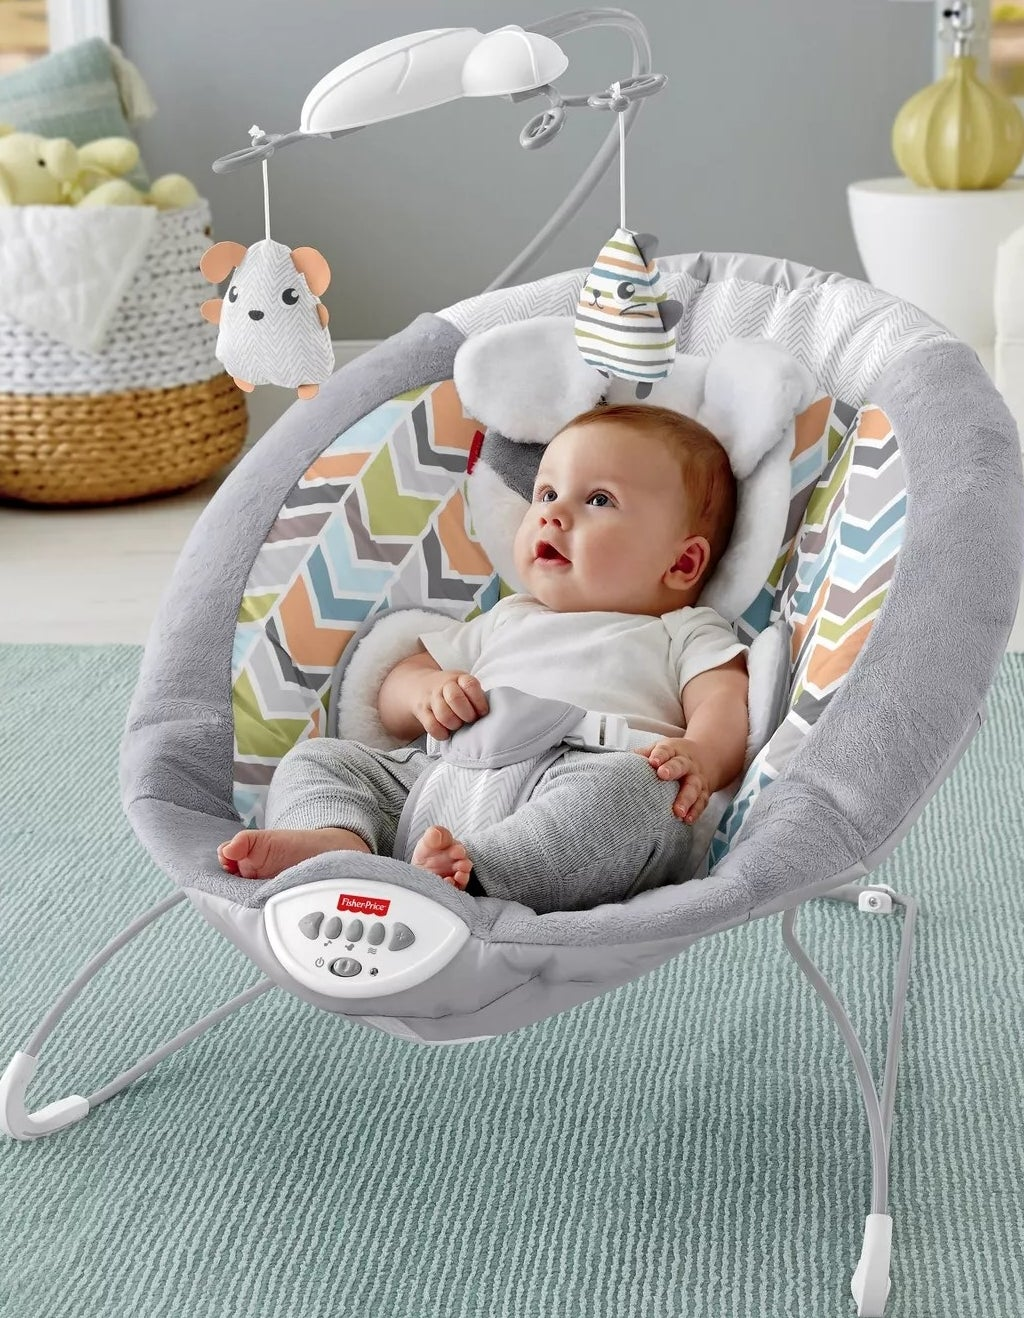 The baby bouncer with a mobile